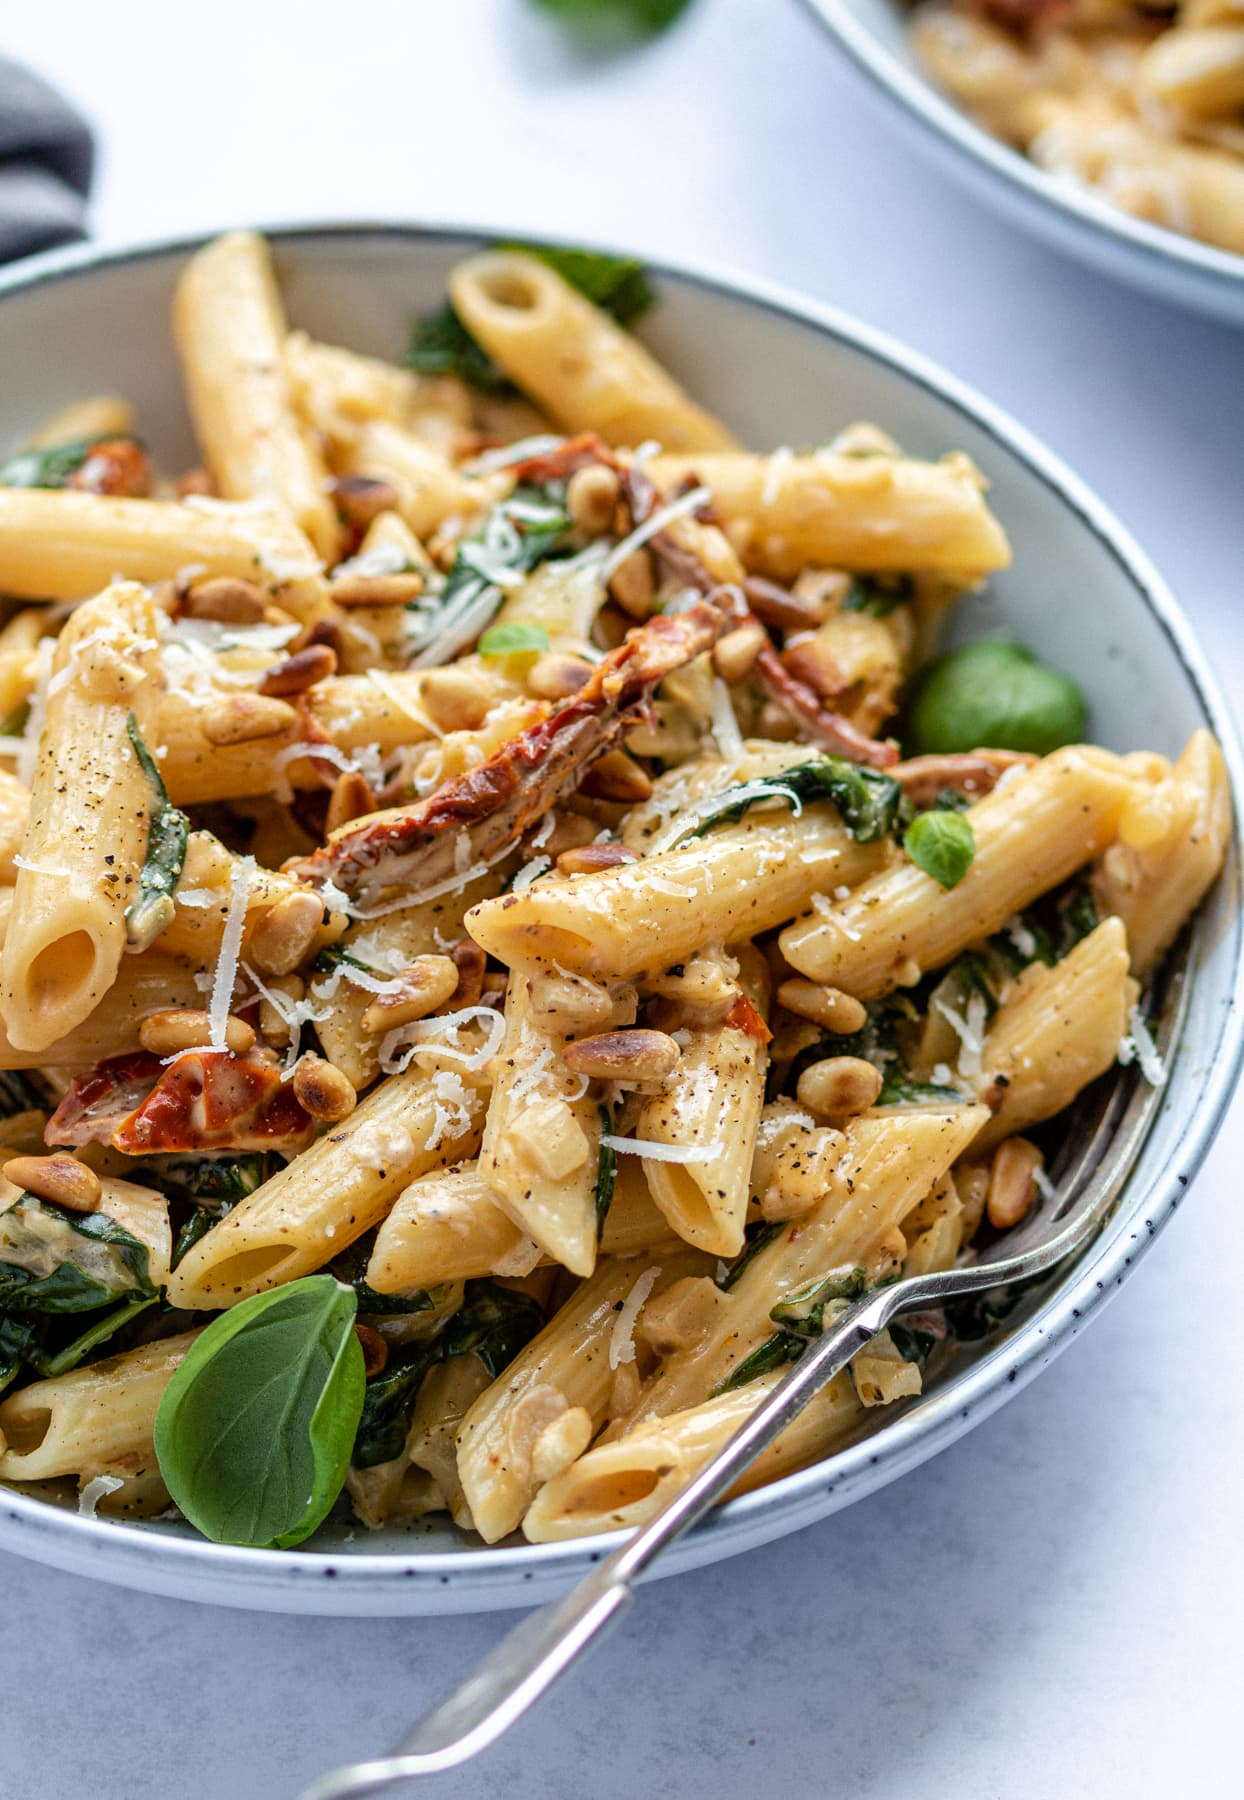 Pasta with tomato in a sauce with pasta and a basil garnish